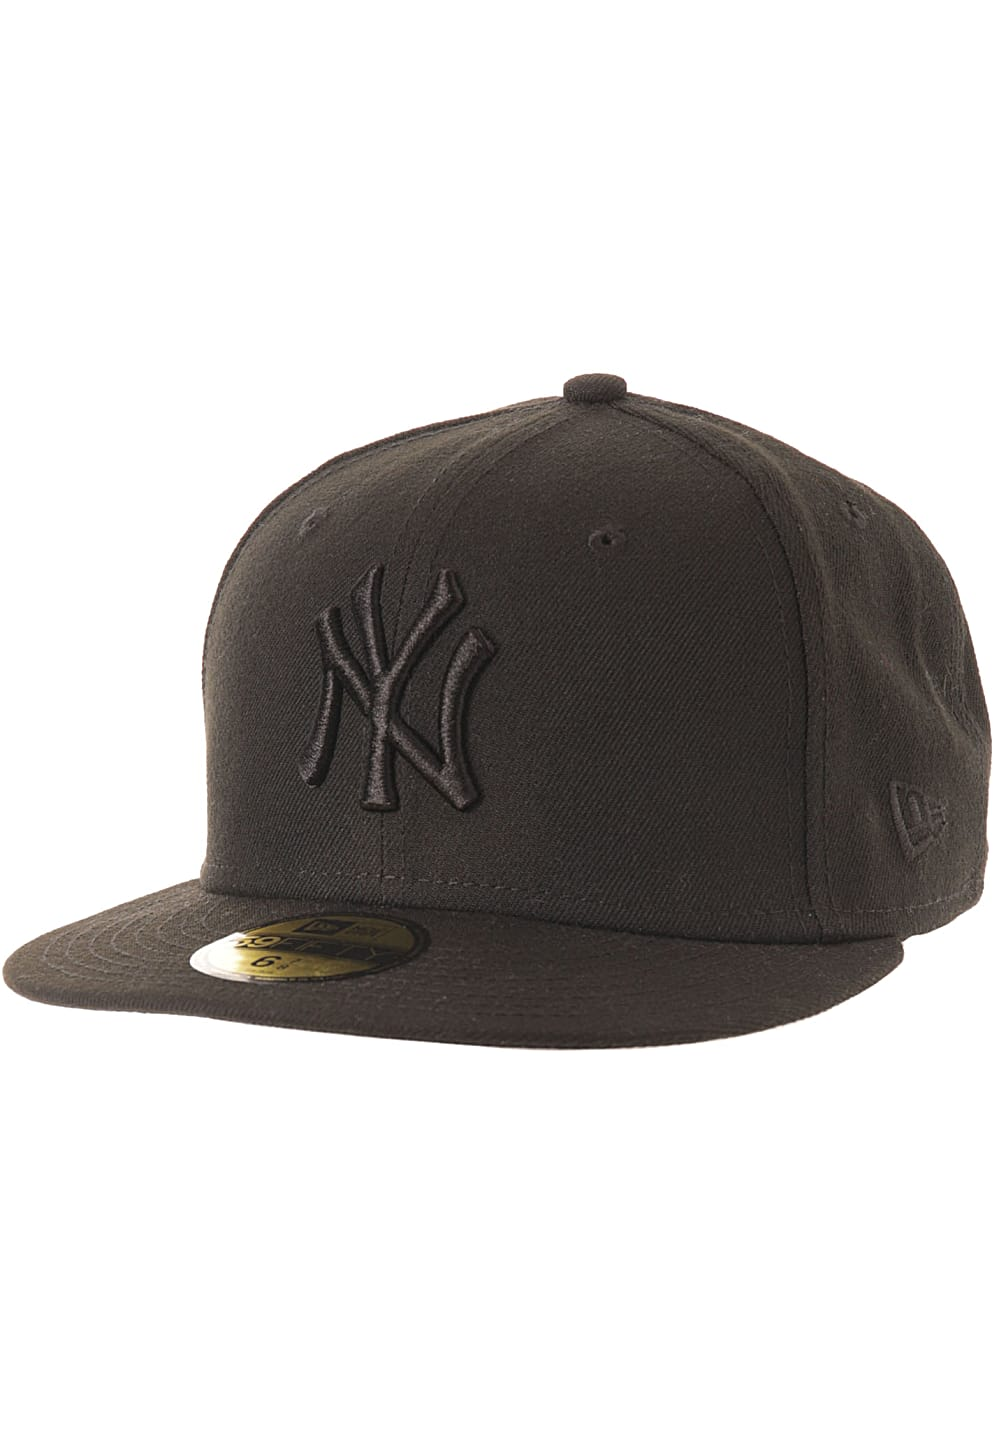 9d161417d7e2b NEW Era 59Fifty New York Yankees - Gorra ajustada - Negro - Planet Sports